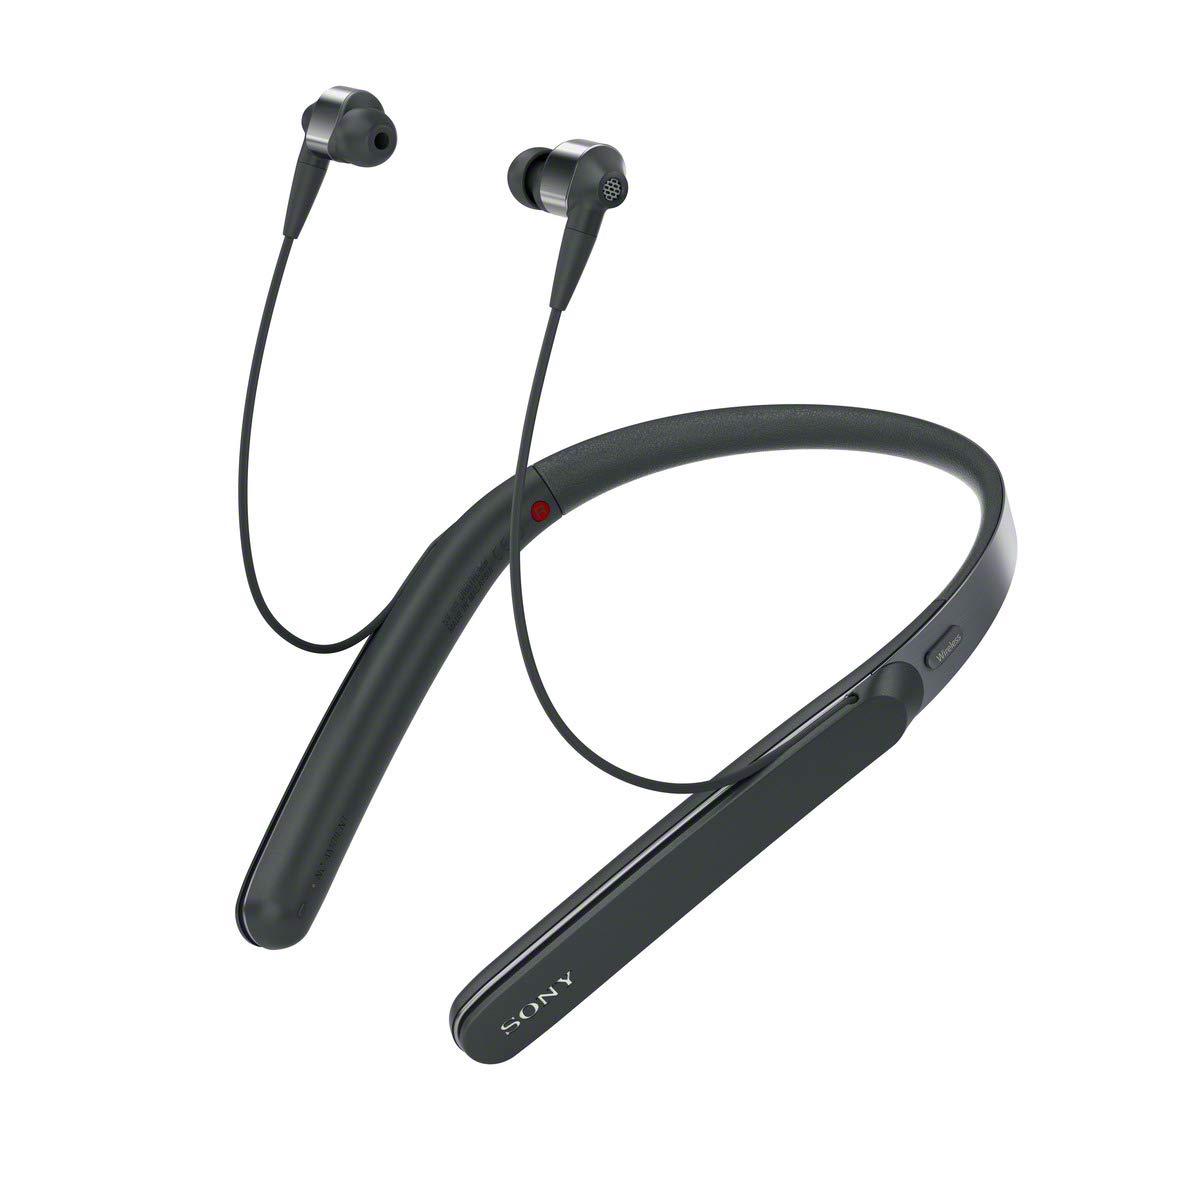 WI-1000X Noise Cancelling Headphones